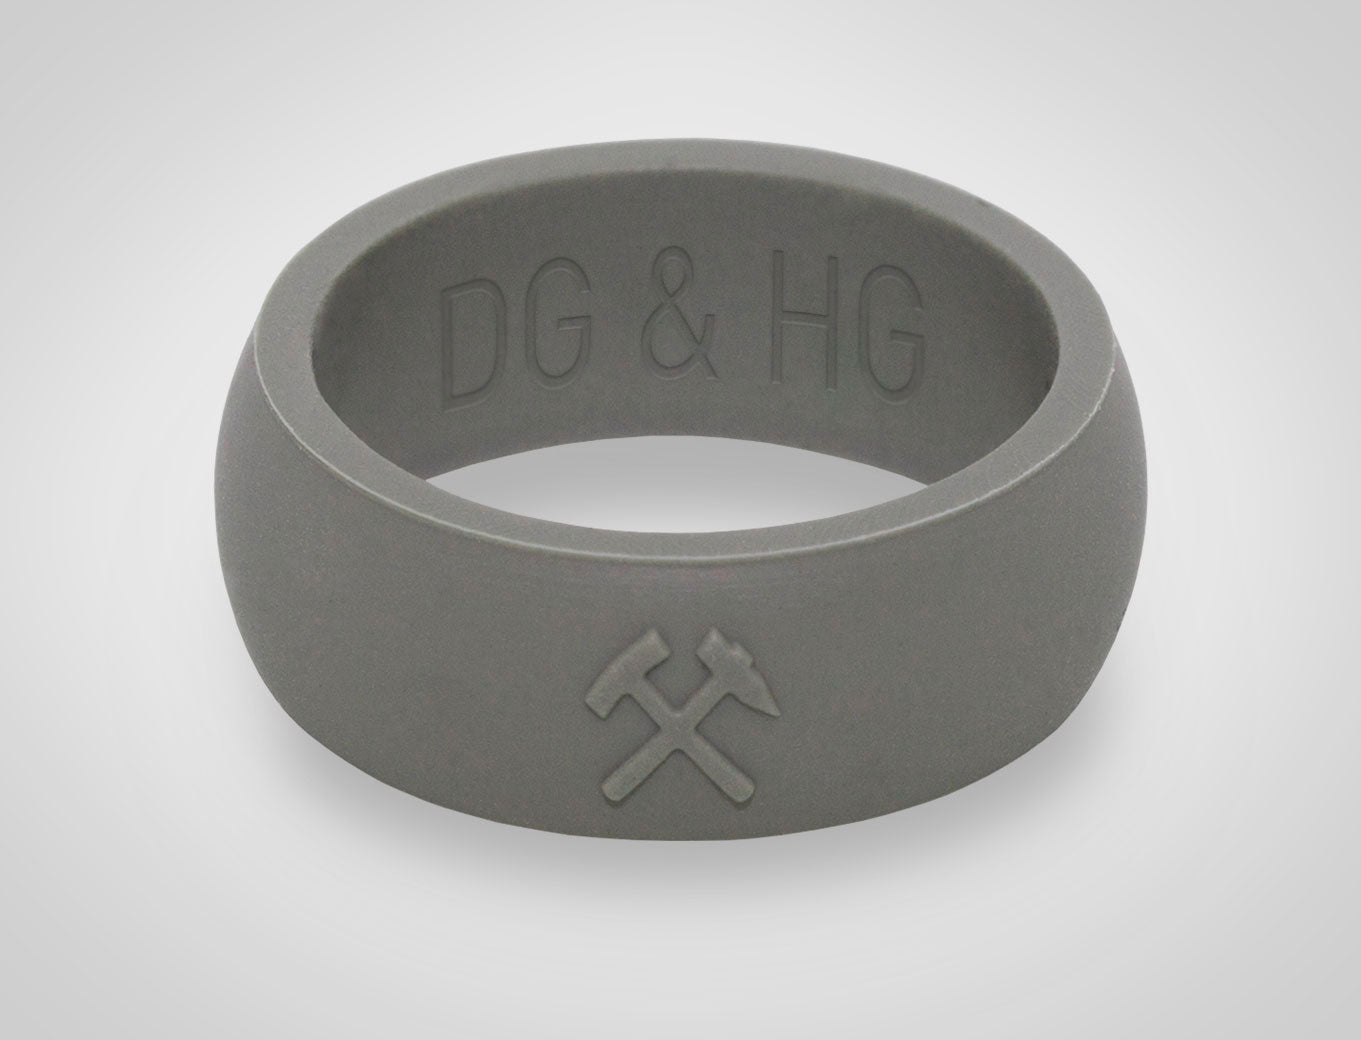 Because you can commemorate your love with custom engraving.